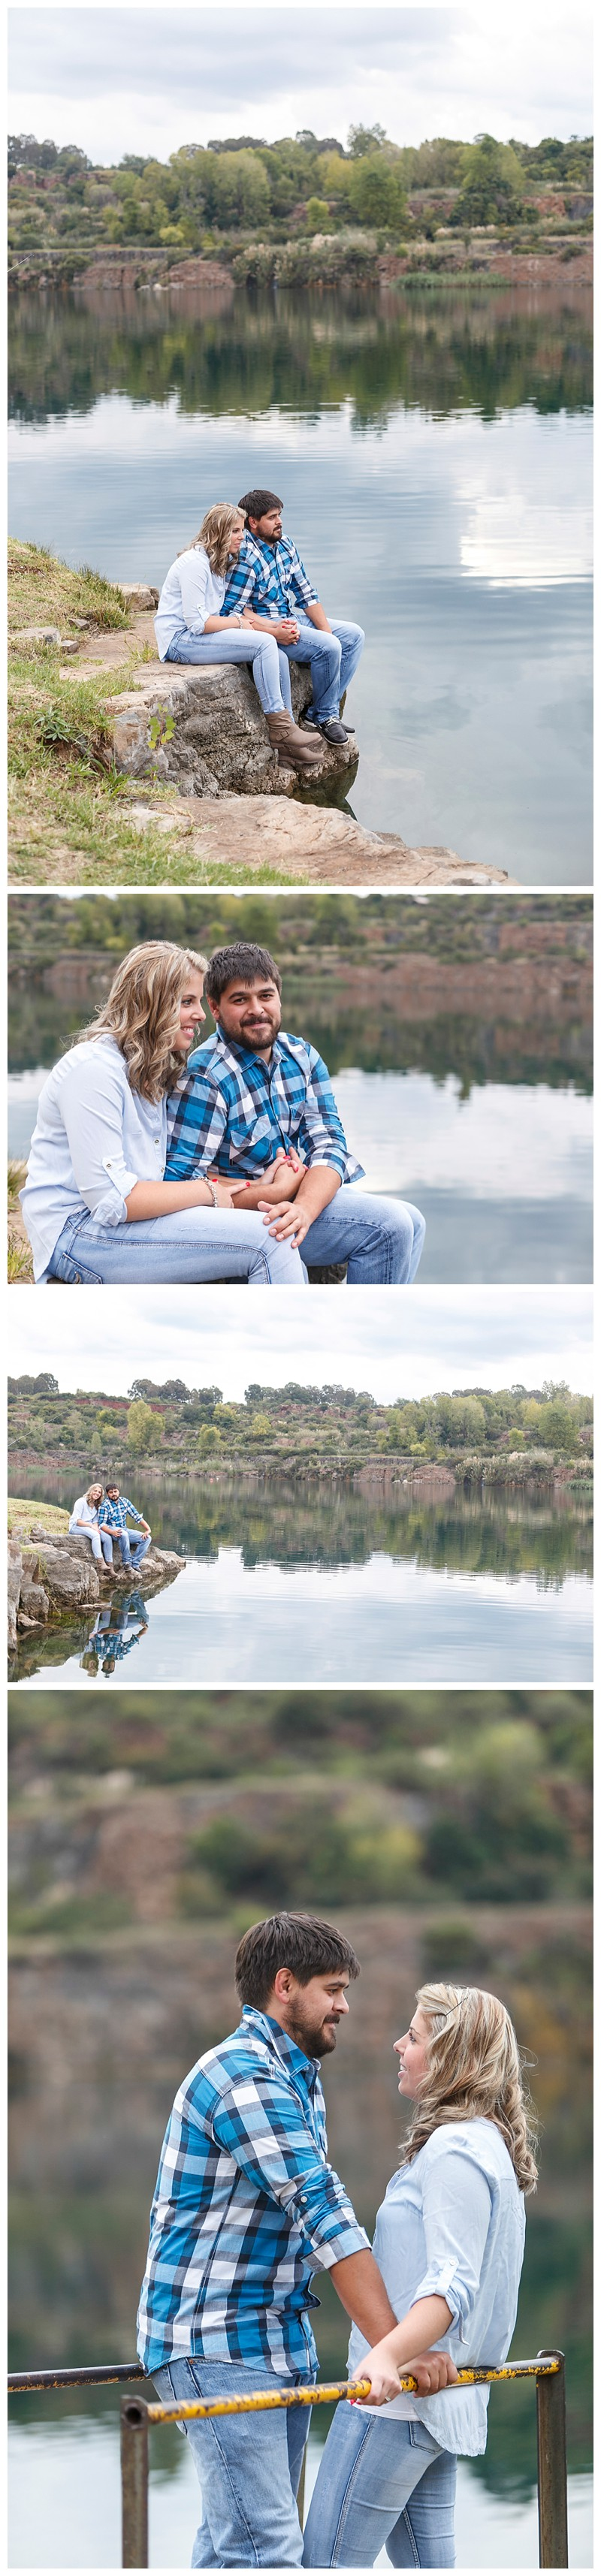 chane-xander-basslake-engagement_0007